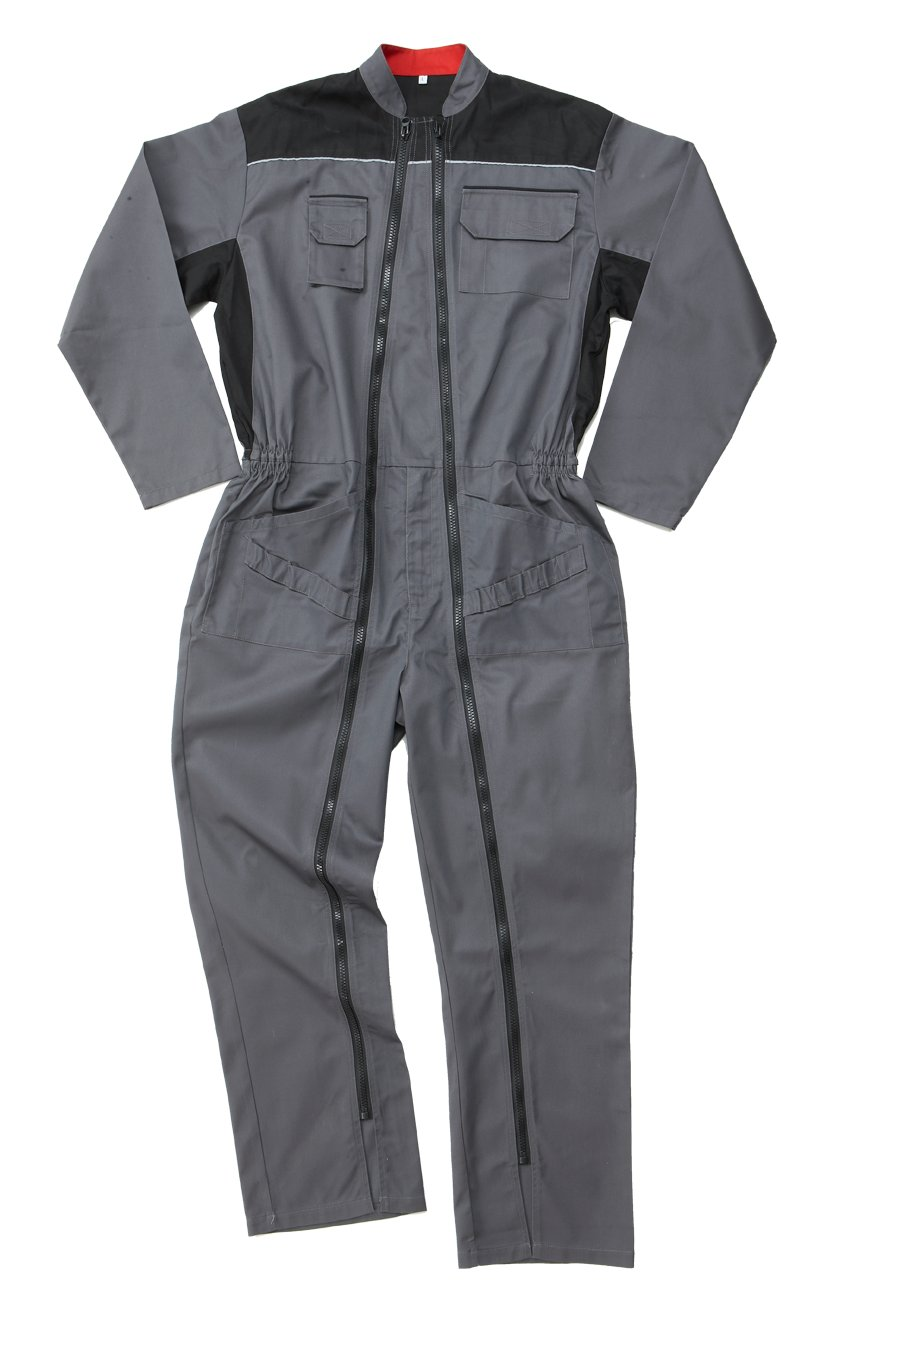 2 zip PRO WORK one piece suit  - LA TORCHE WORKWEAR